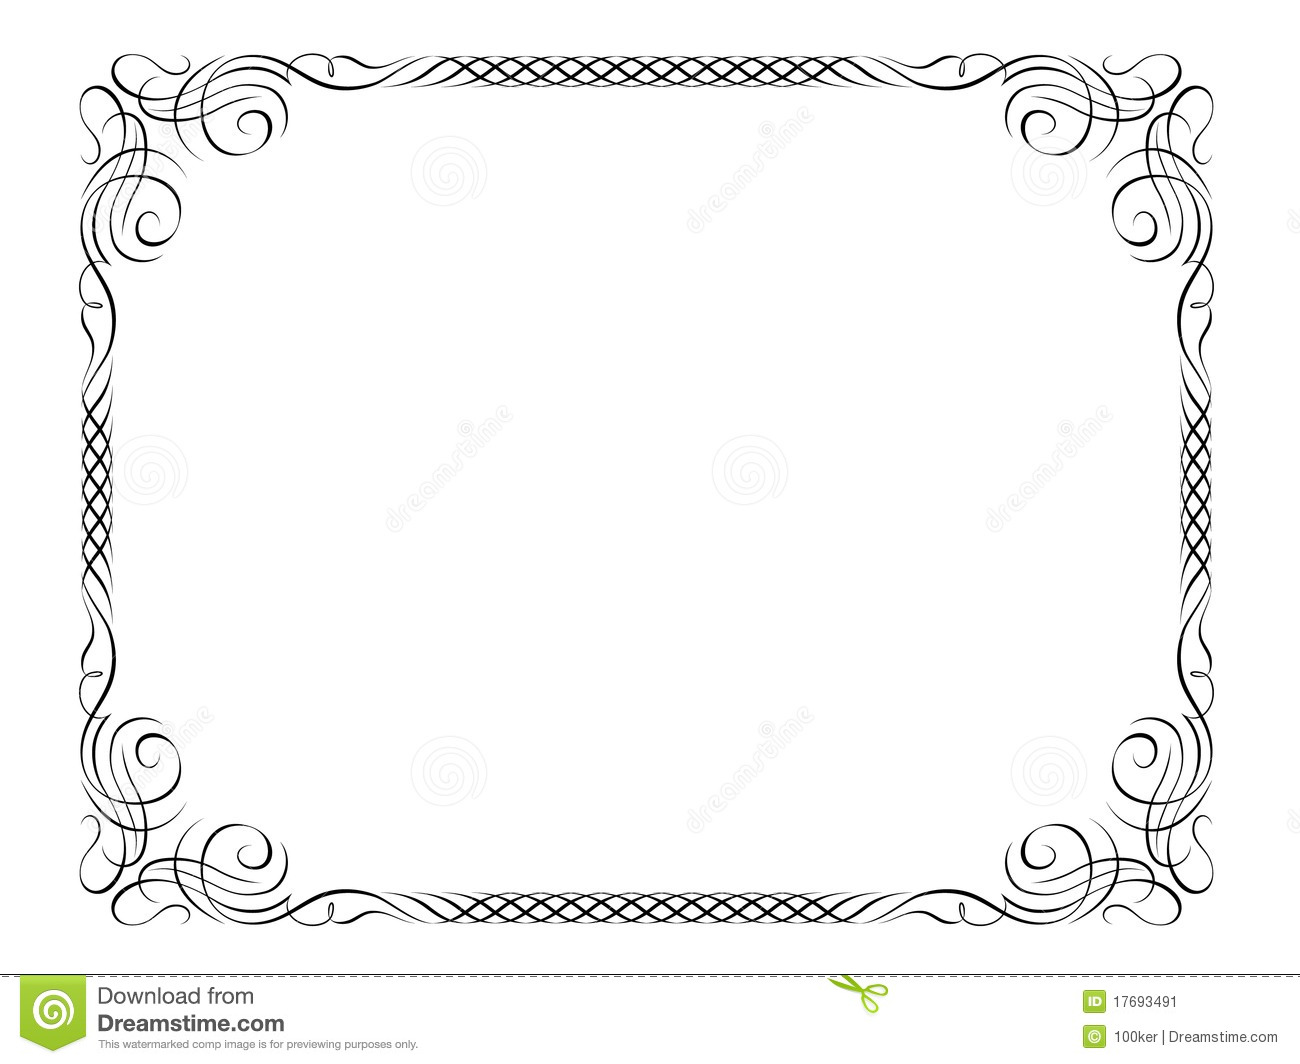 penmanship decorative frame